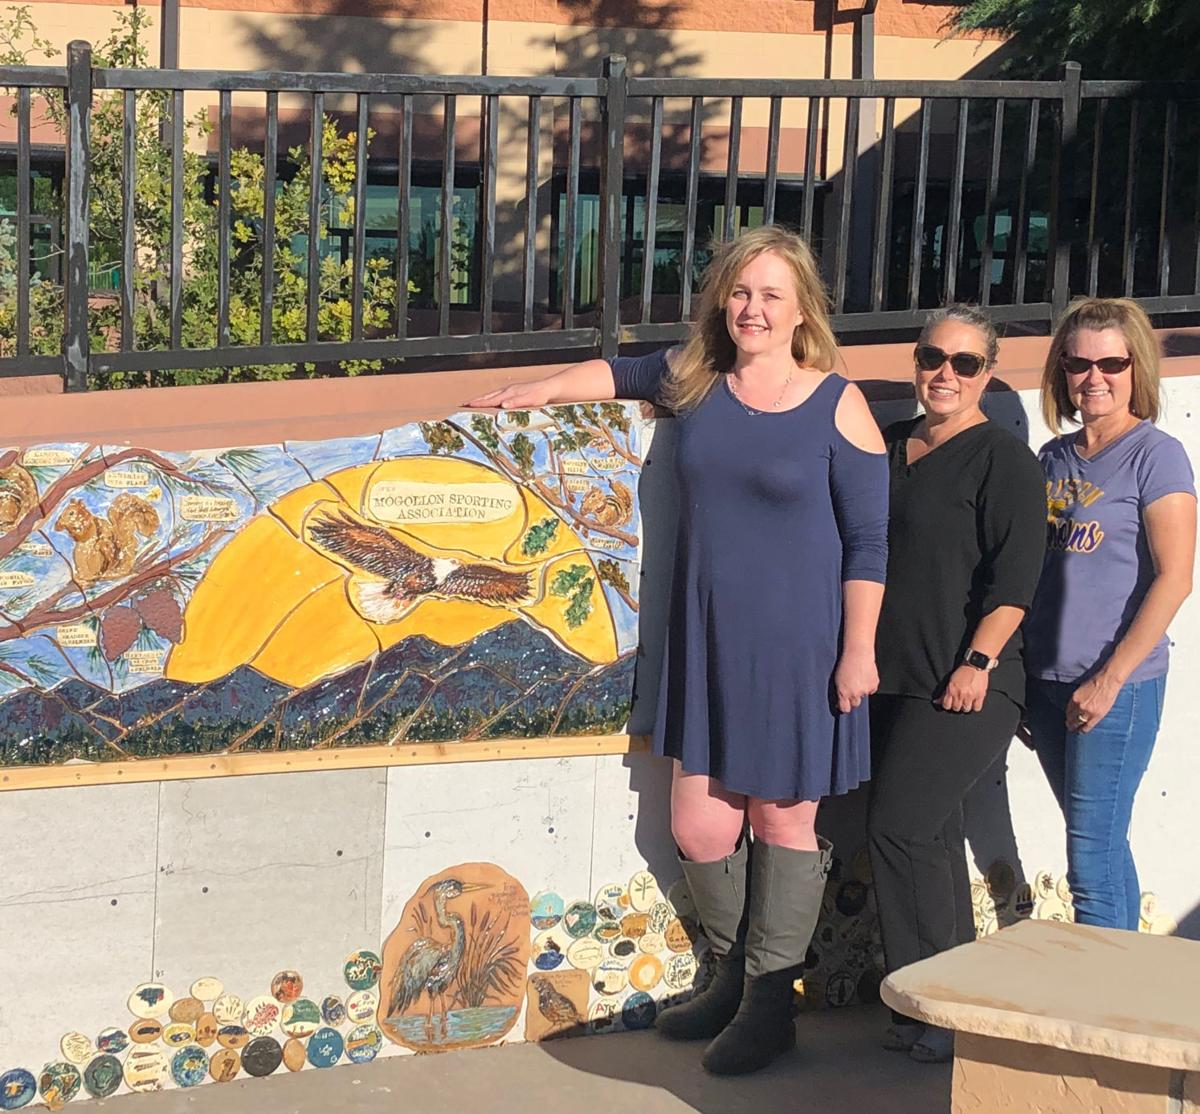 Sarah Linkey (left), Audrey Hogue (center) and Jolynn Schinstock at the installation of the donor wall at Julia Randall Elementary.